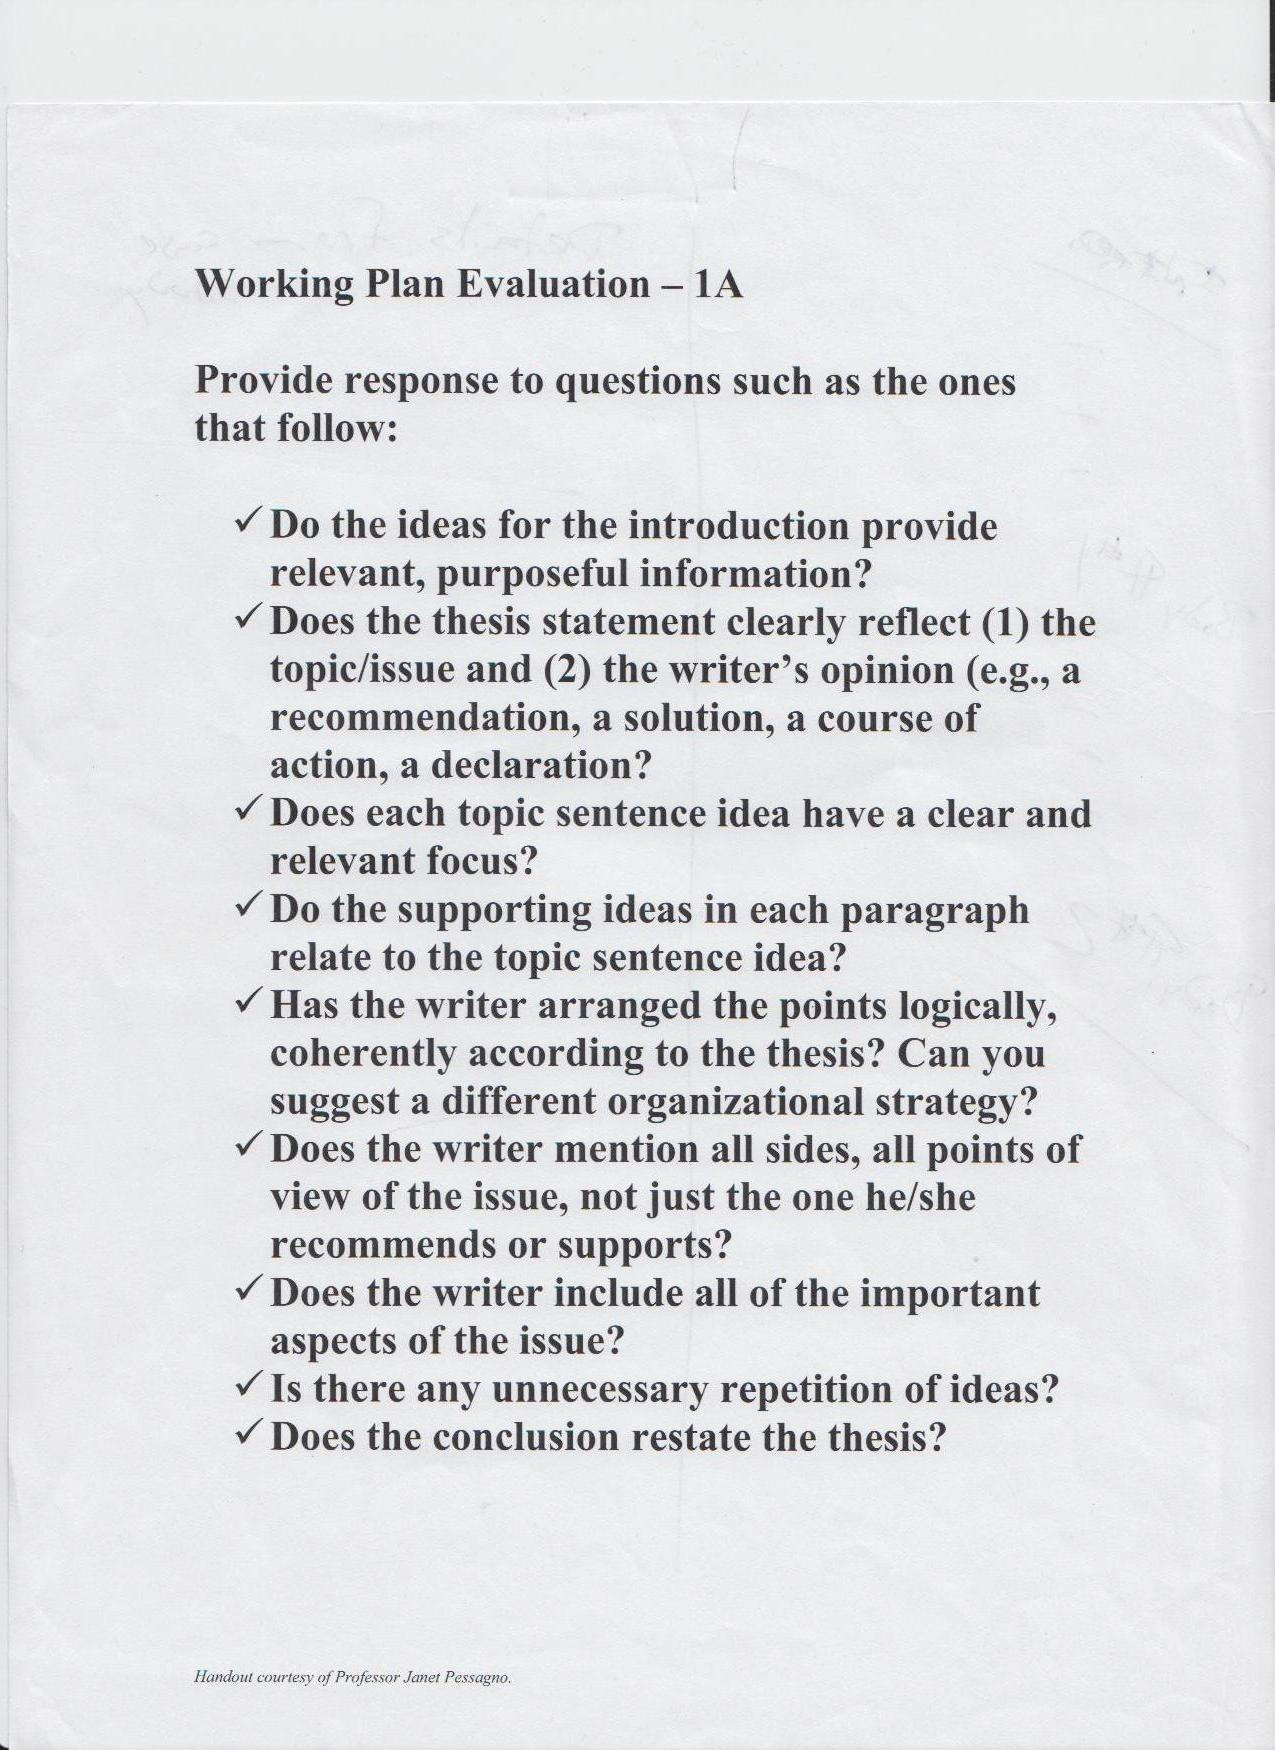 pre professional coursework english academic writing course application letter for bookkeeper